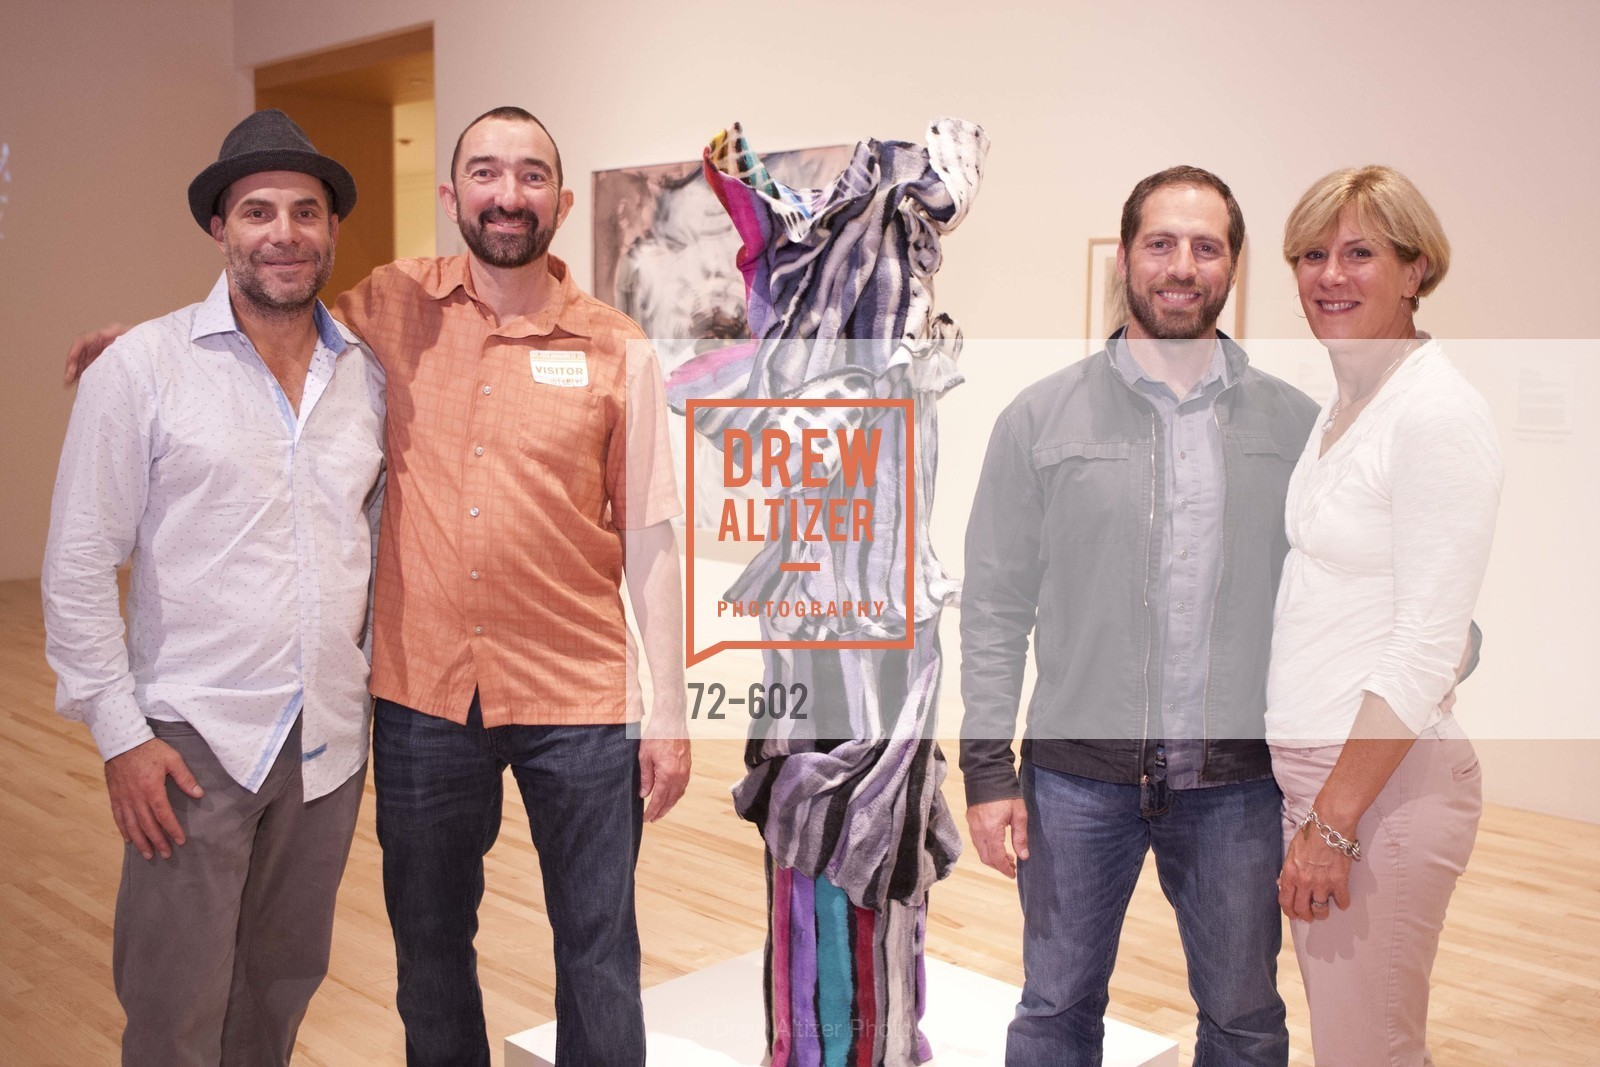 Aaron Gladman, Josh Baxter, Josh Holtzman, Beverly Aabjerb, SAN JOSE MUSEUM OF ART Fall Reception Opening, US, October 9th, 2014,Drew Altizer, Drew Altizer Photography, full-service agency, private events, San Francisco photographer, photographer california